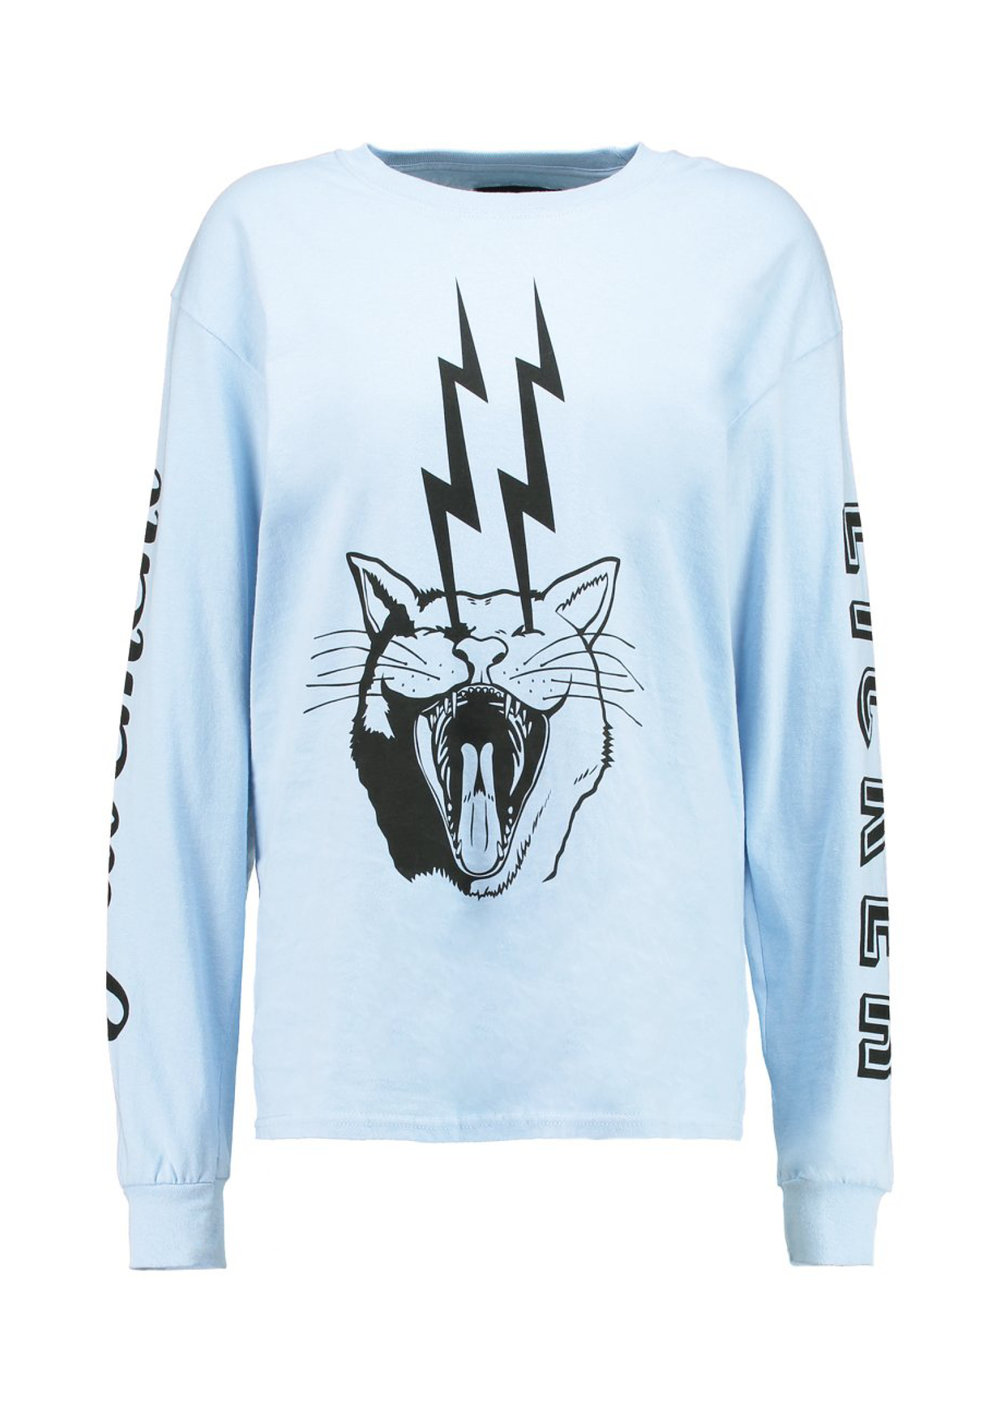 House of Holland X Pavement Licker